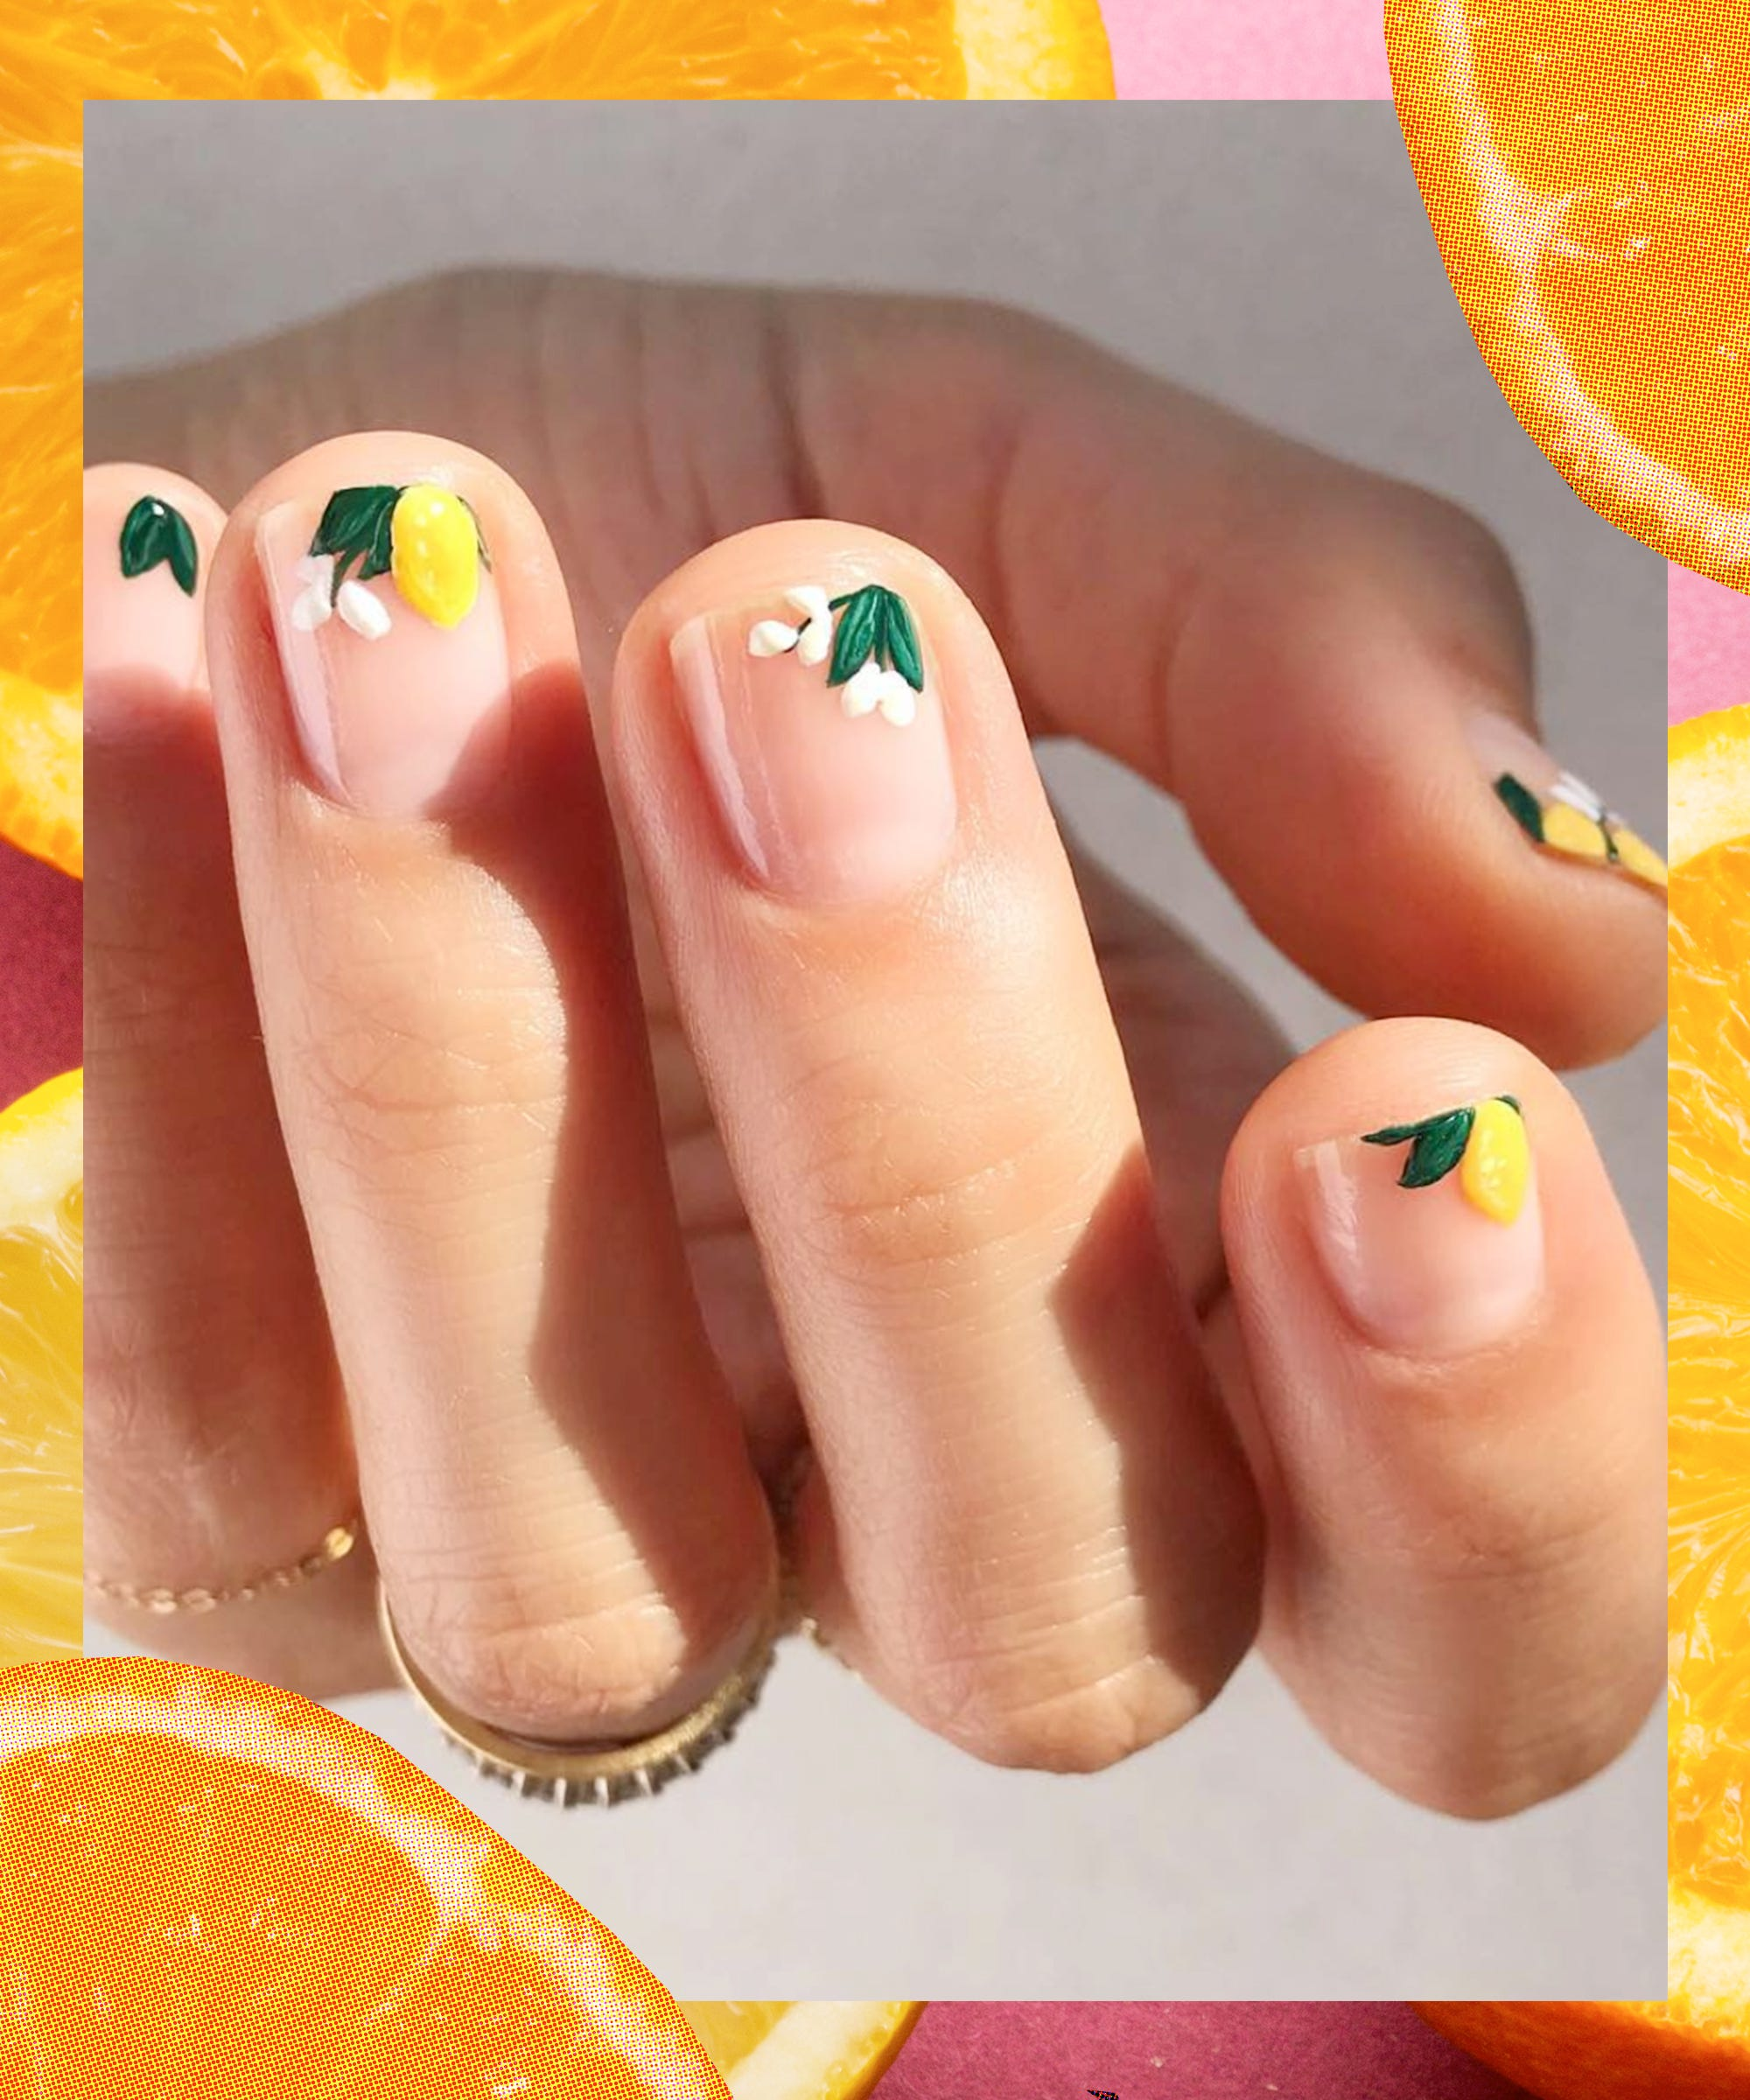 The Top Nail Art Designs For World Cup 2018 Soccer Fans